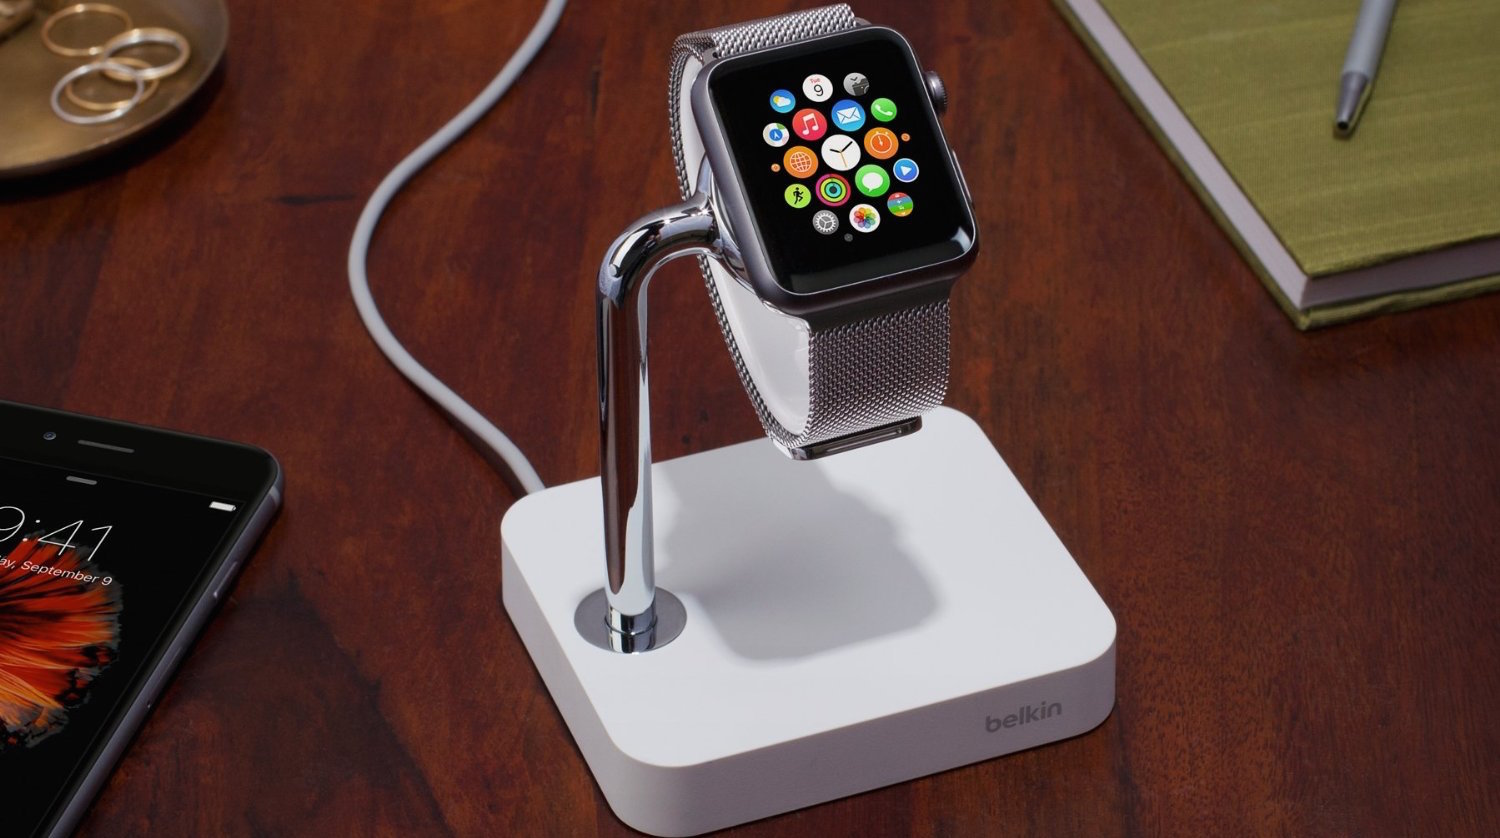 Belkin's Valet Apple Watch Dock comes w/ an integrated charger for $40 (Reg. $60)